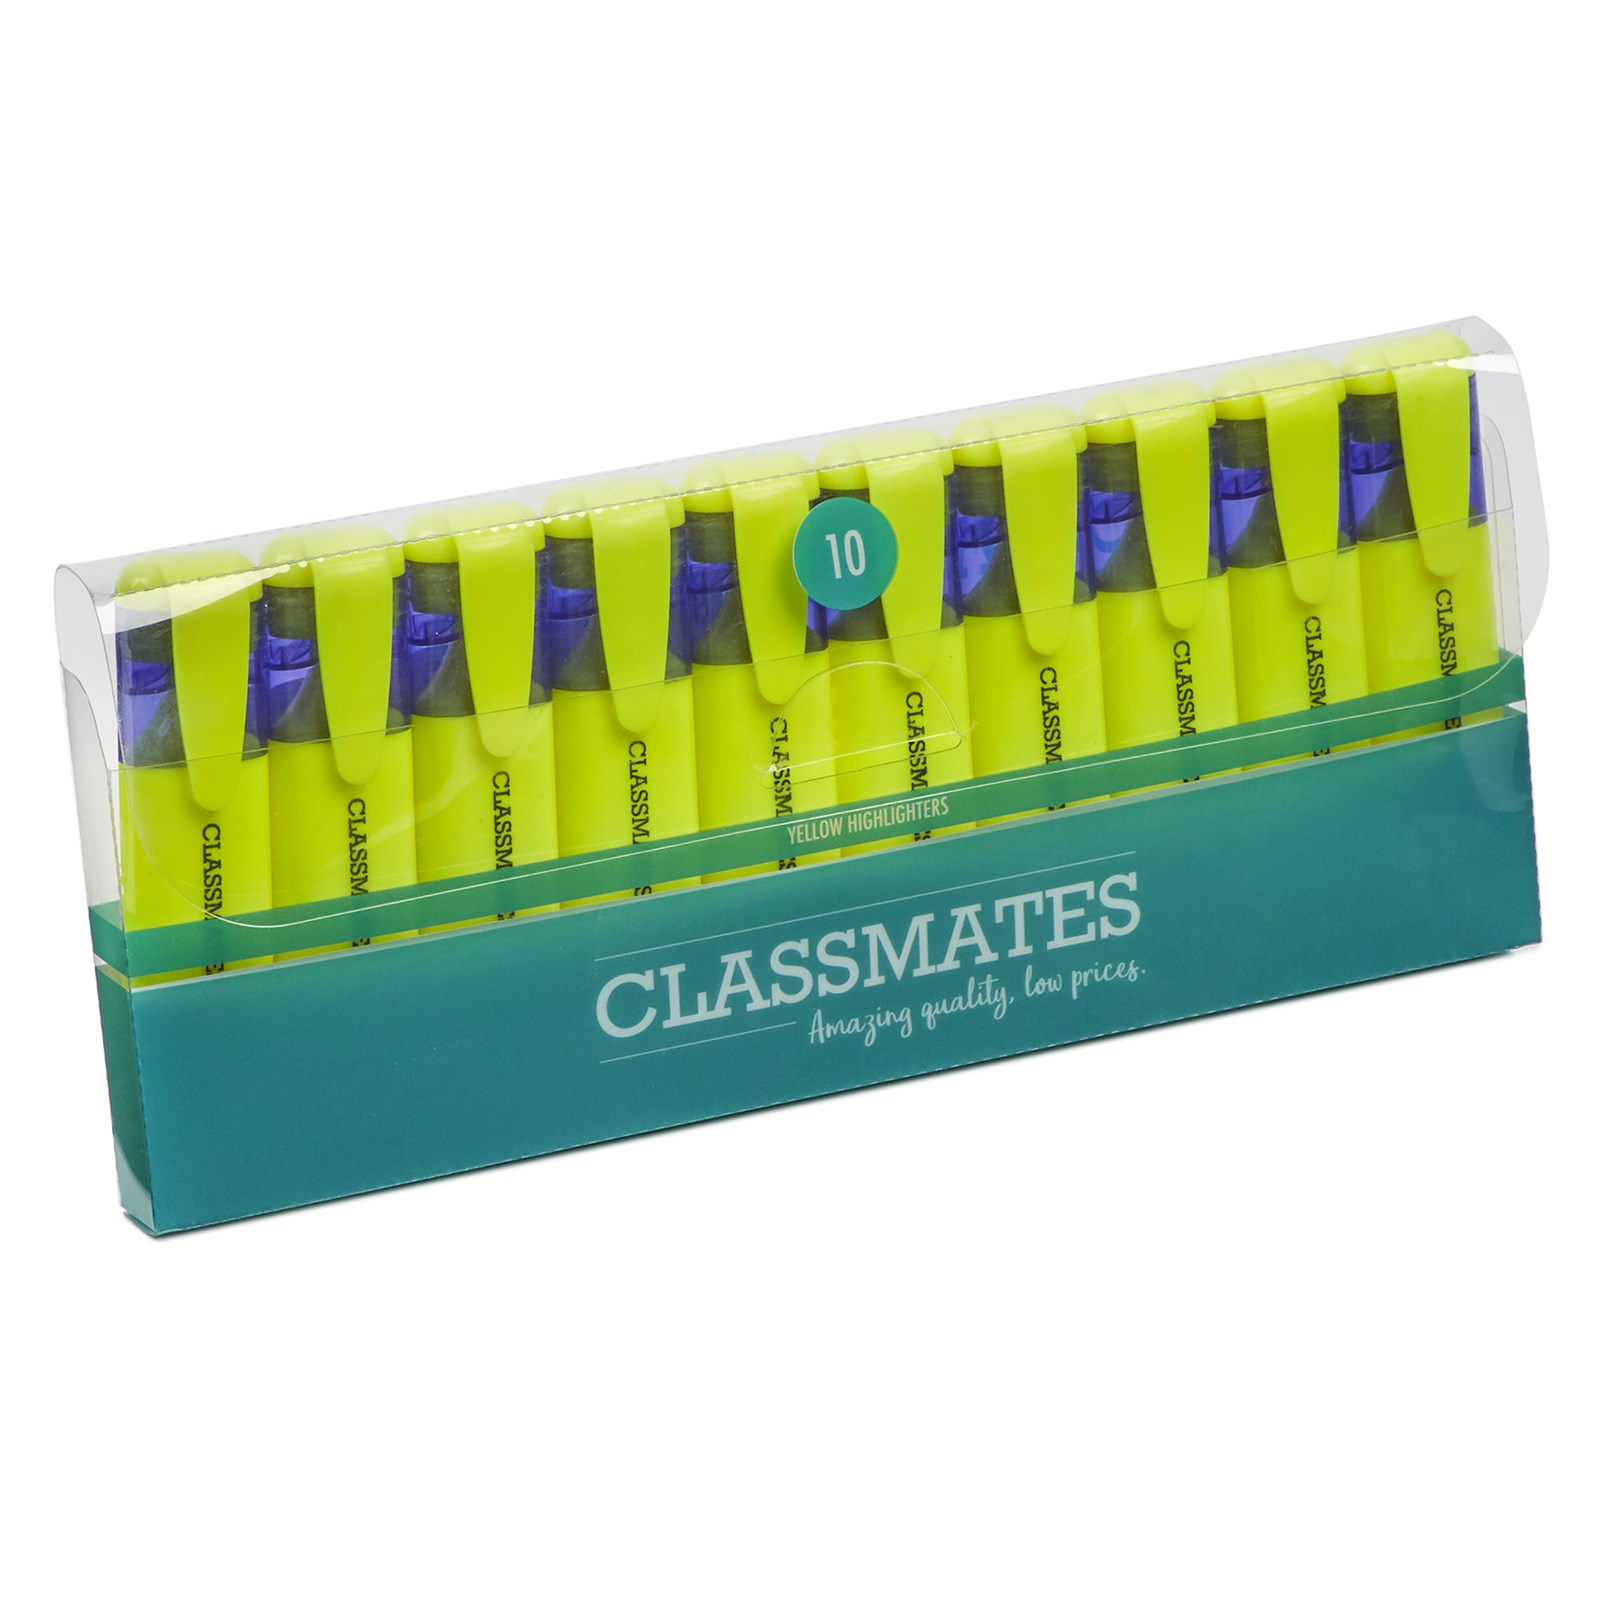 Classmates Highlighter Yellow - Pack of 10